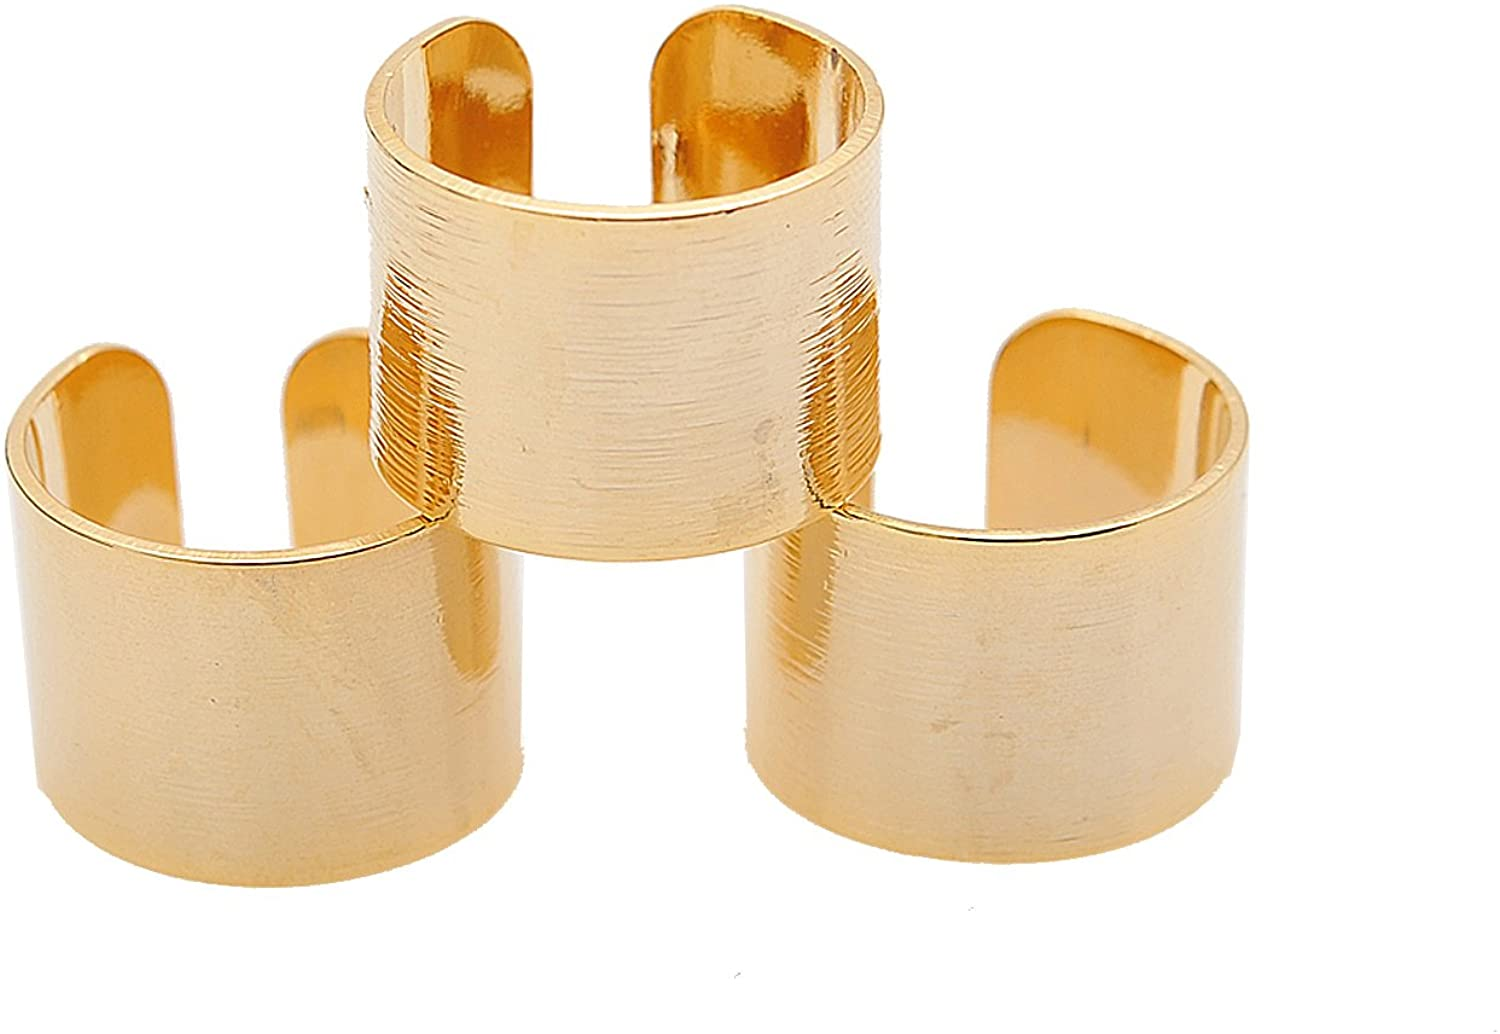 Spinningdaisy Adjustable Brushed Metal Tube Knuckle Ring Set of 3 (Gold Plated)